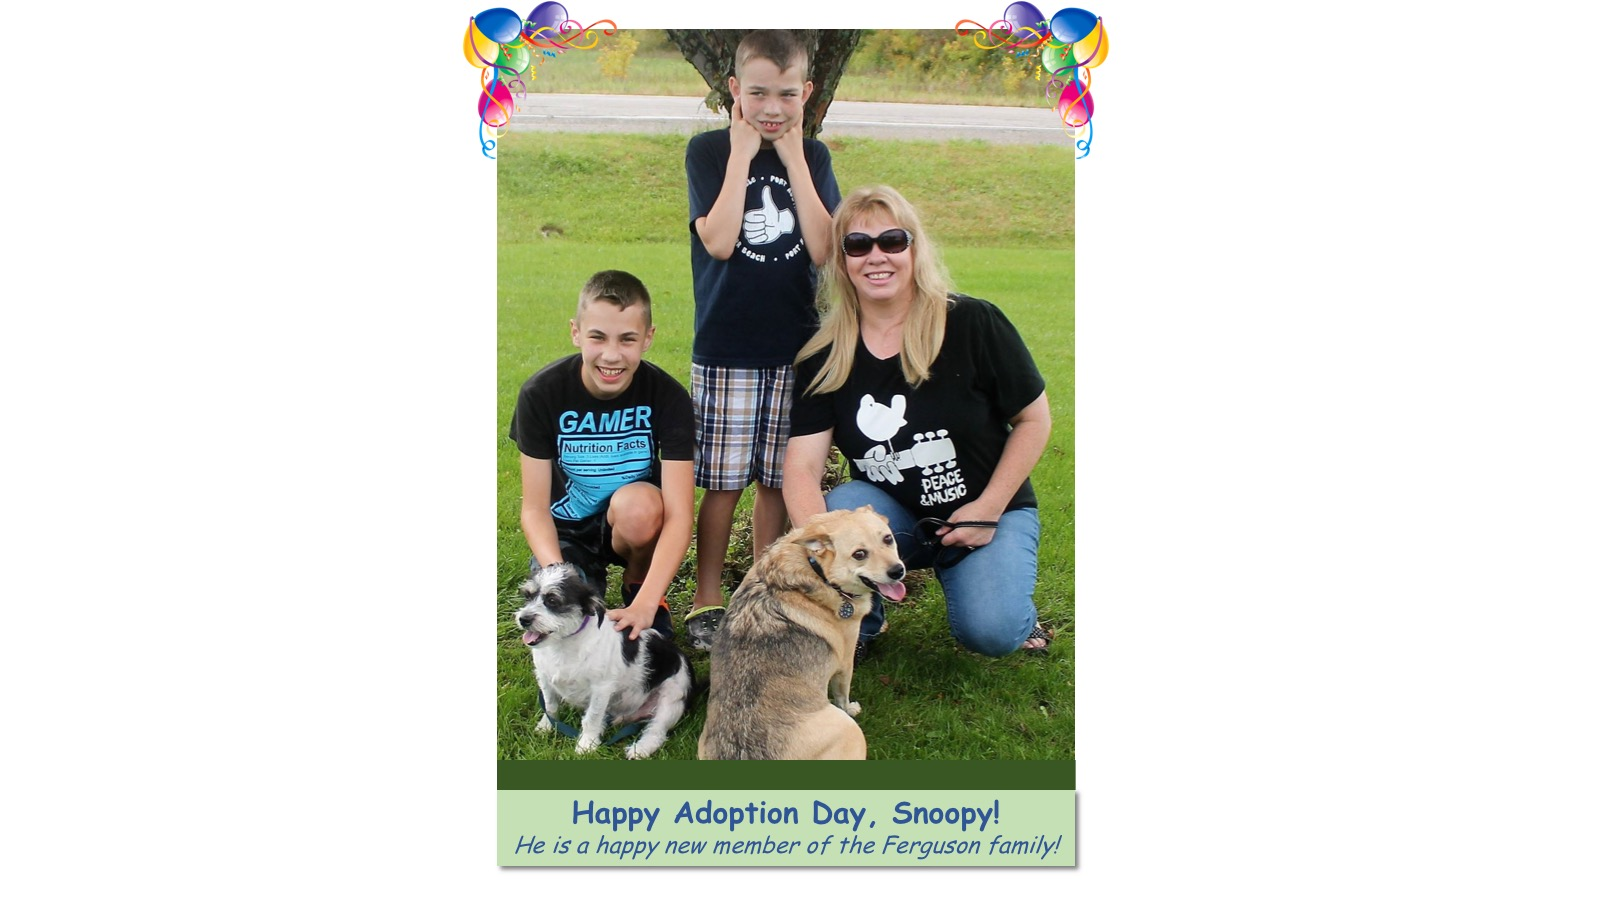 Snoopy_Adoption_Photo_2018.jpg